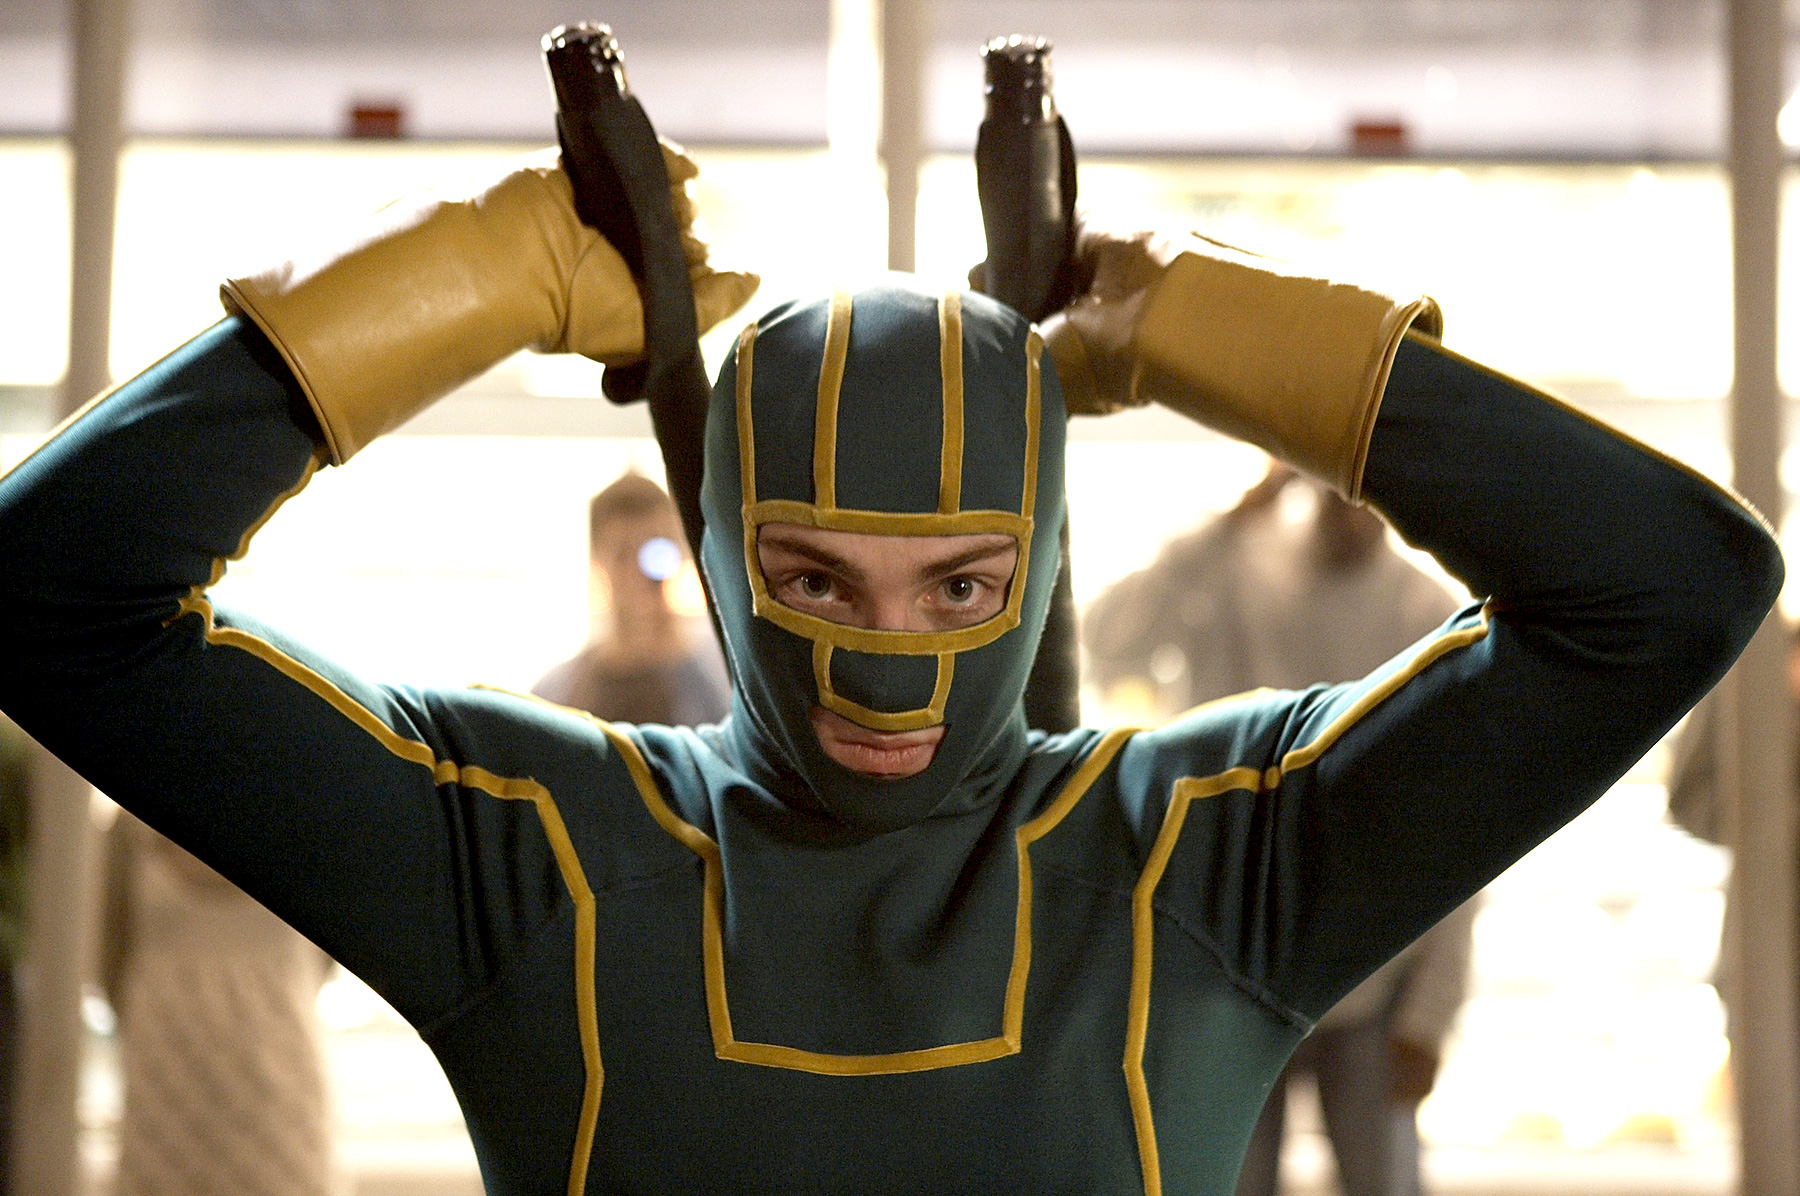 As Dave Lizewski, Aaron Johnson fashioned his own Kick-Ass super suit in 2010's surprise hit.